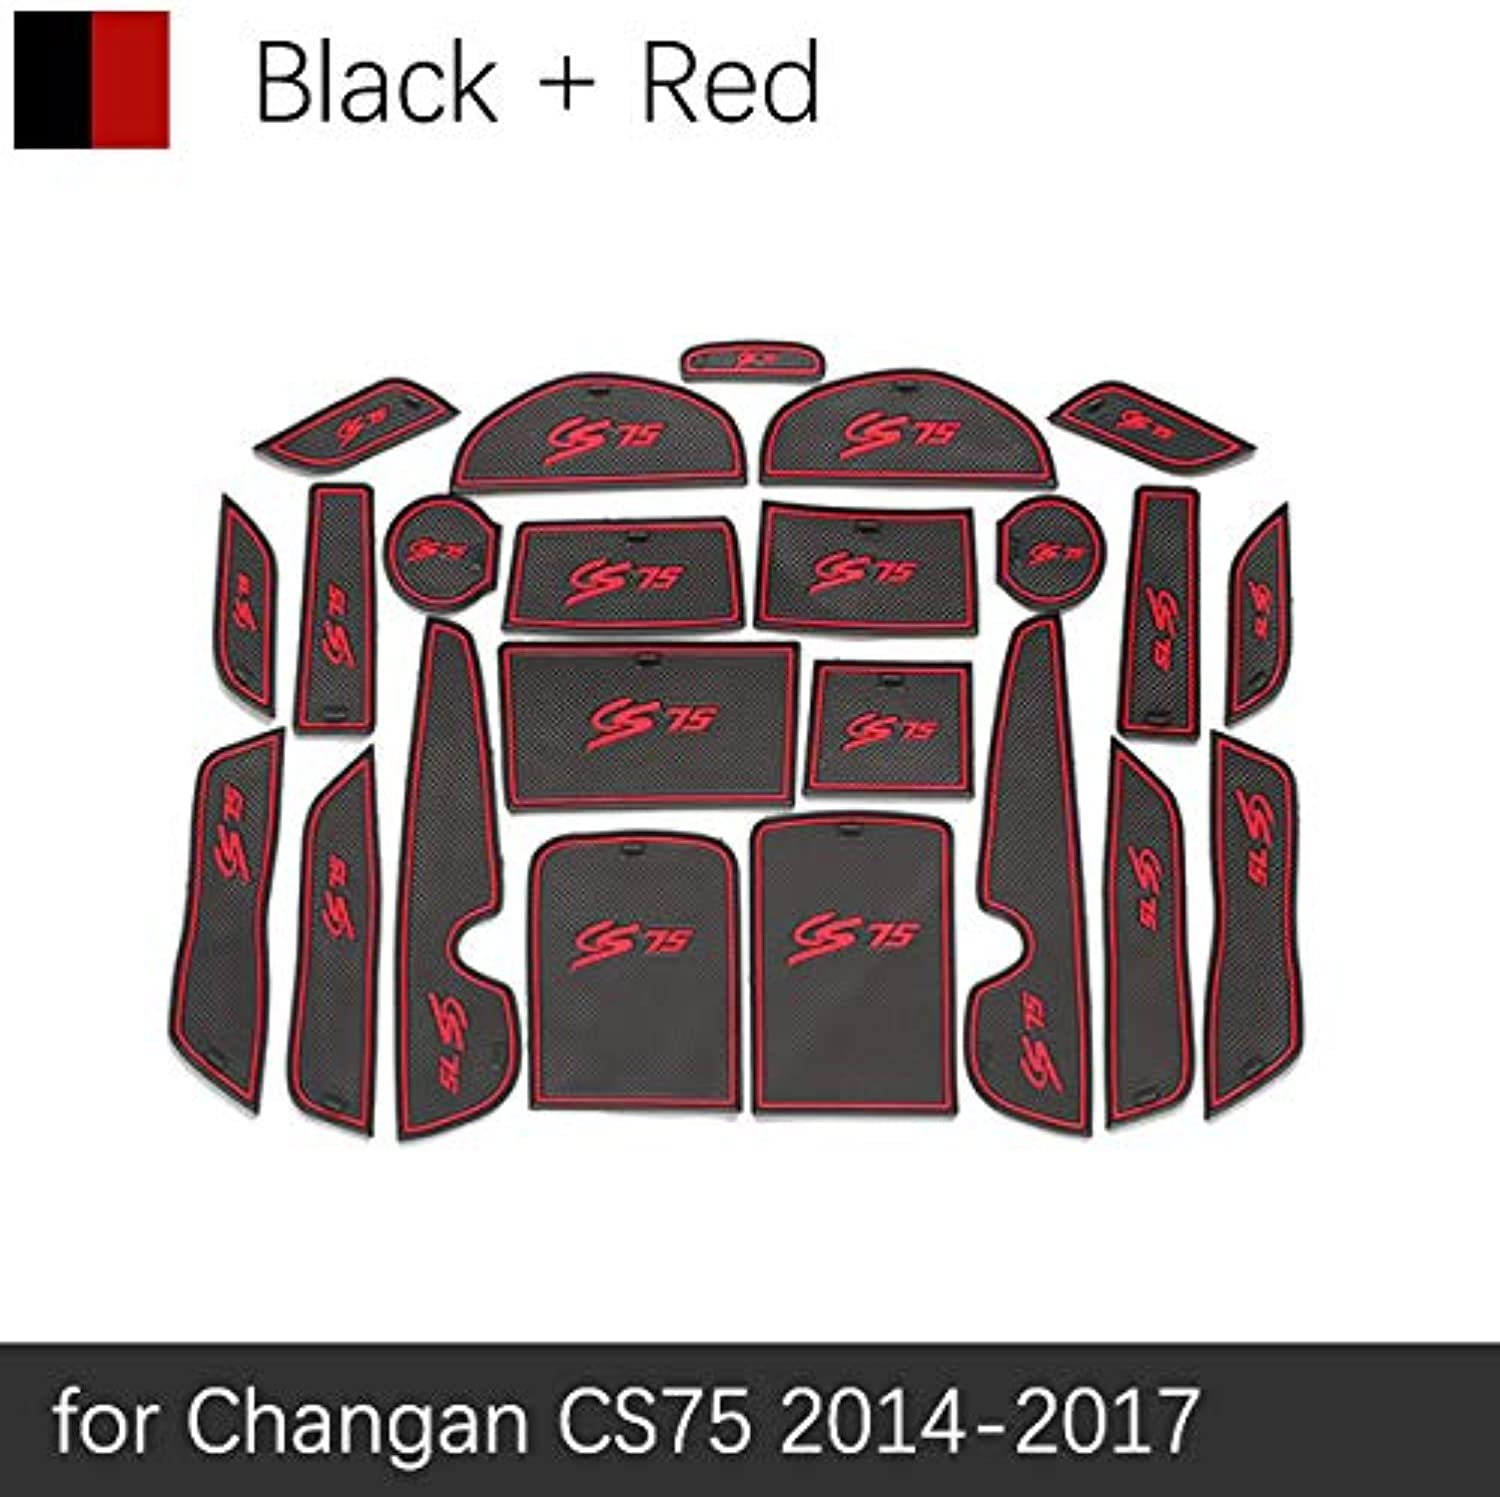 AntiSlip Gate Slot Mat Rubber Cup Mats for Changan CS75 20142017 Accessories Stickers 2014 2015 2016 2017 NonSilp Pad 23PCS  (color Name  Red Black)